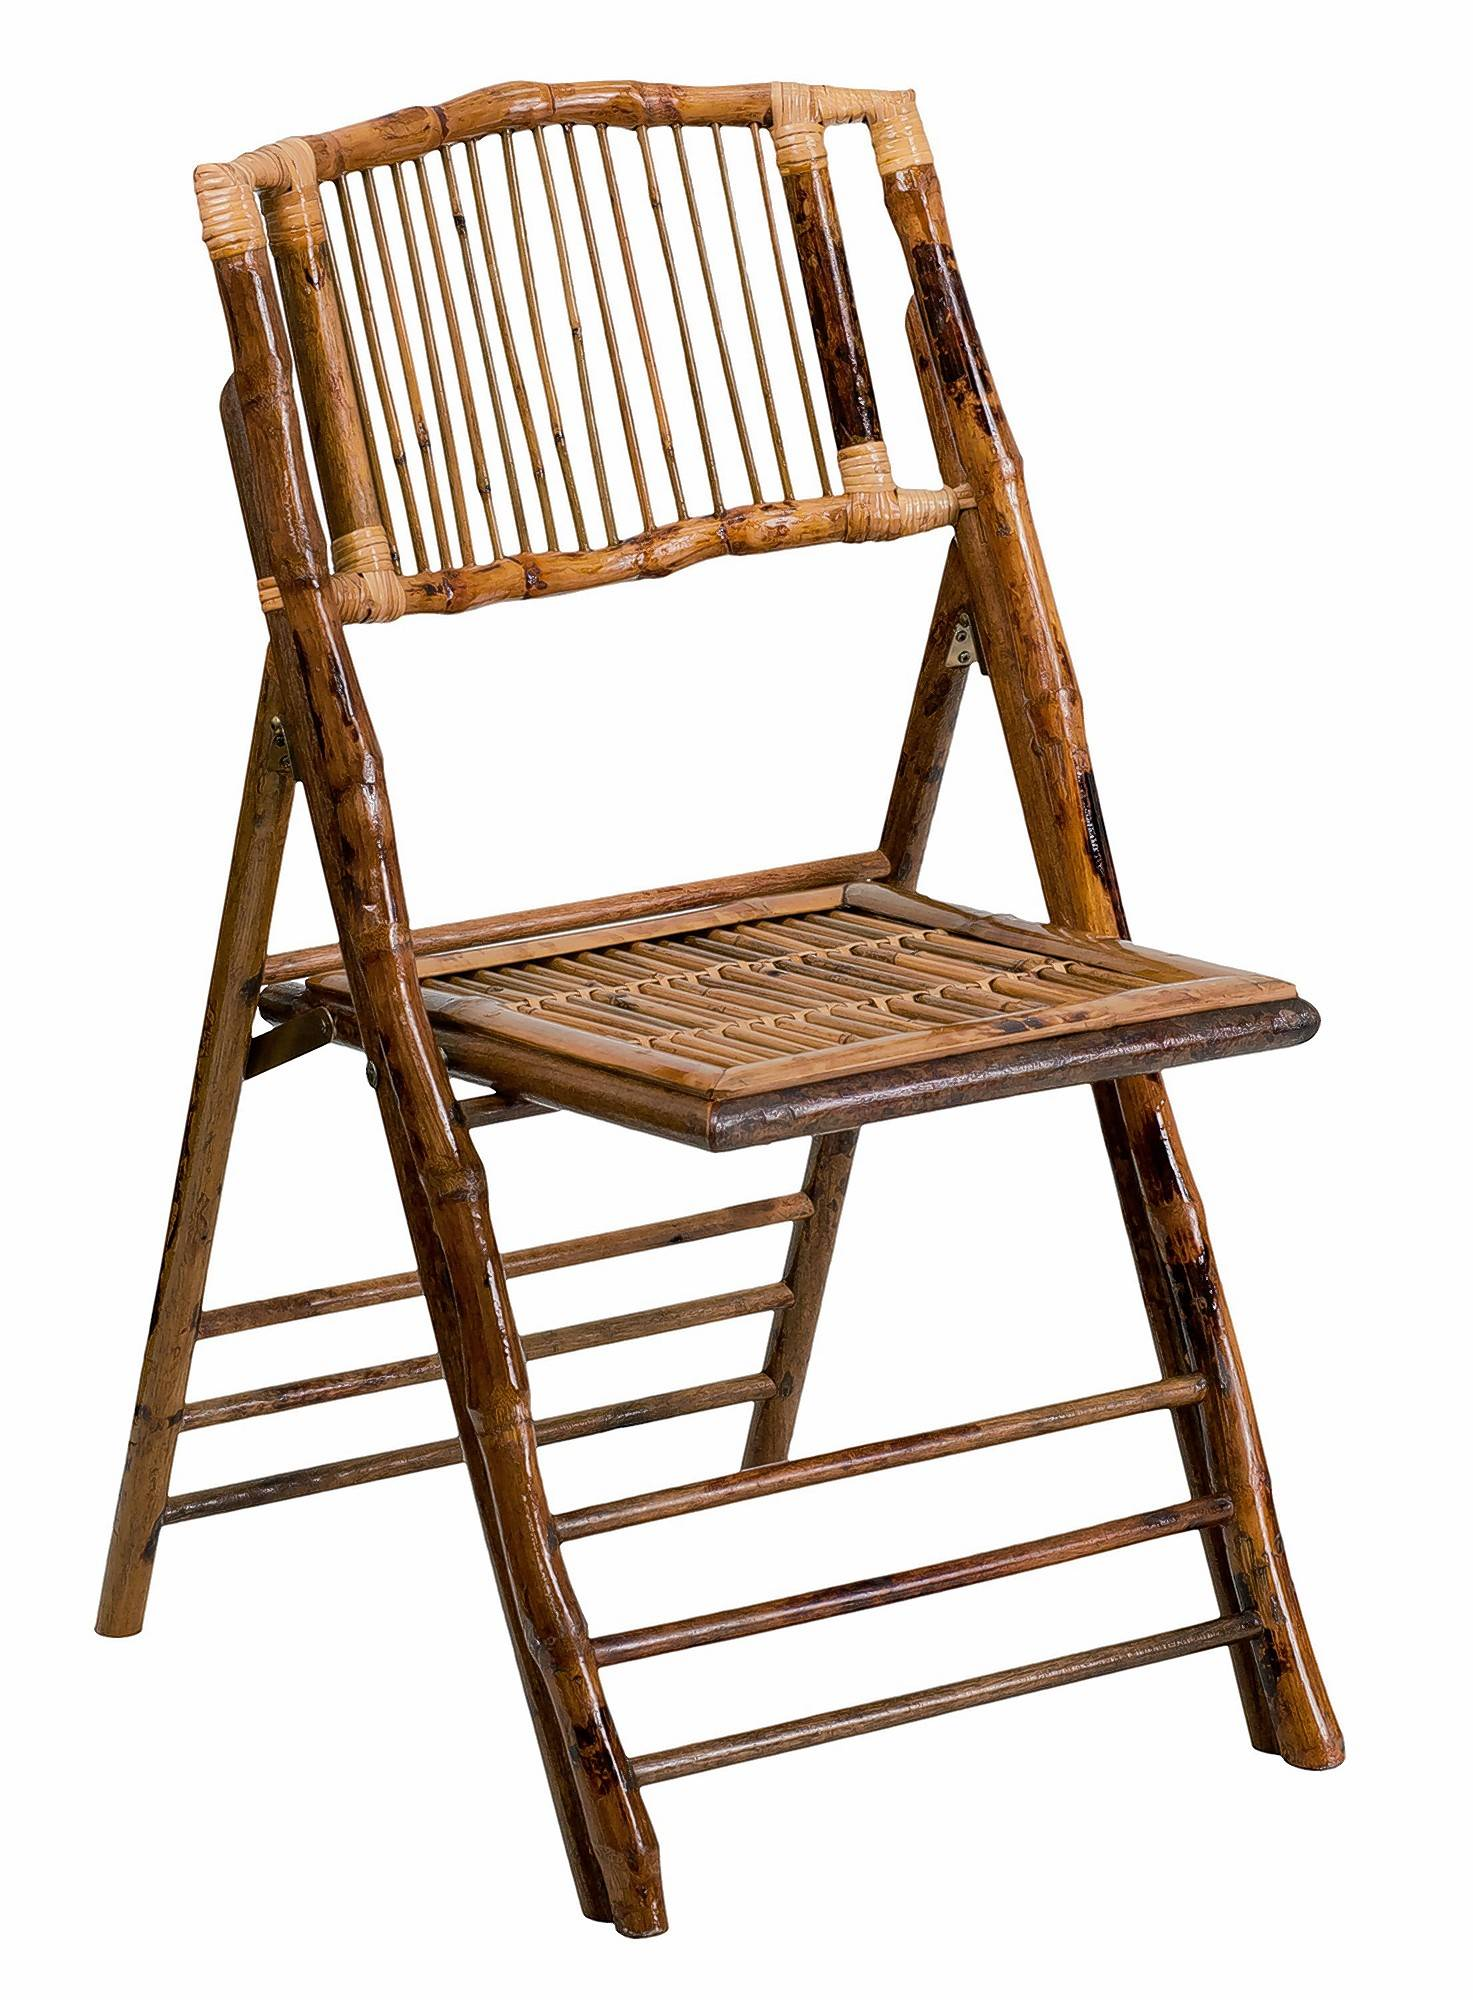 American Champion bamboo folding chair, $38.44 at amazon.com.